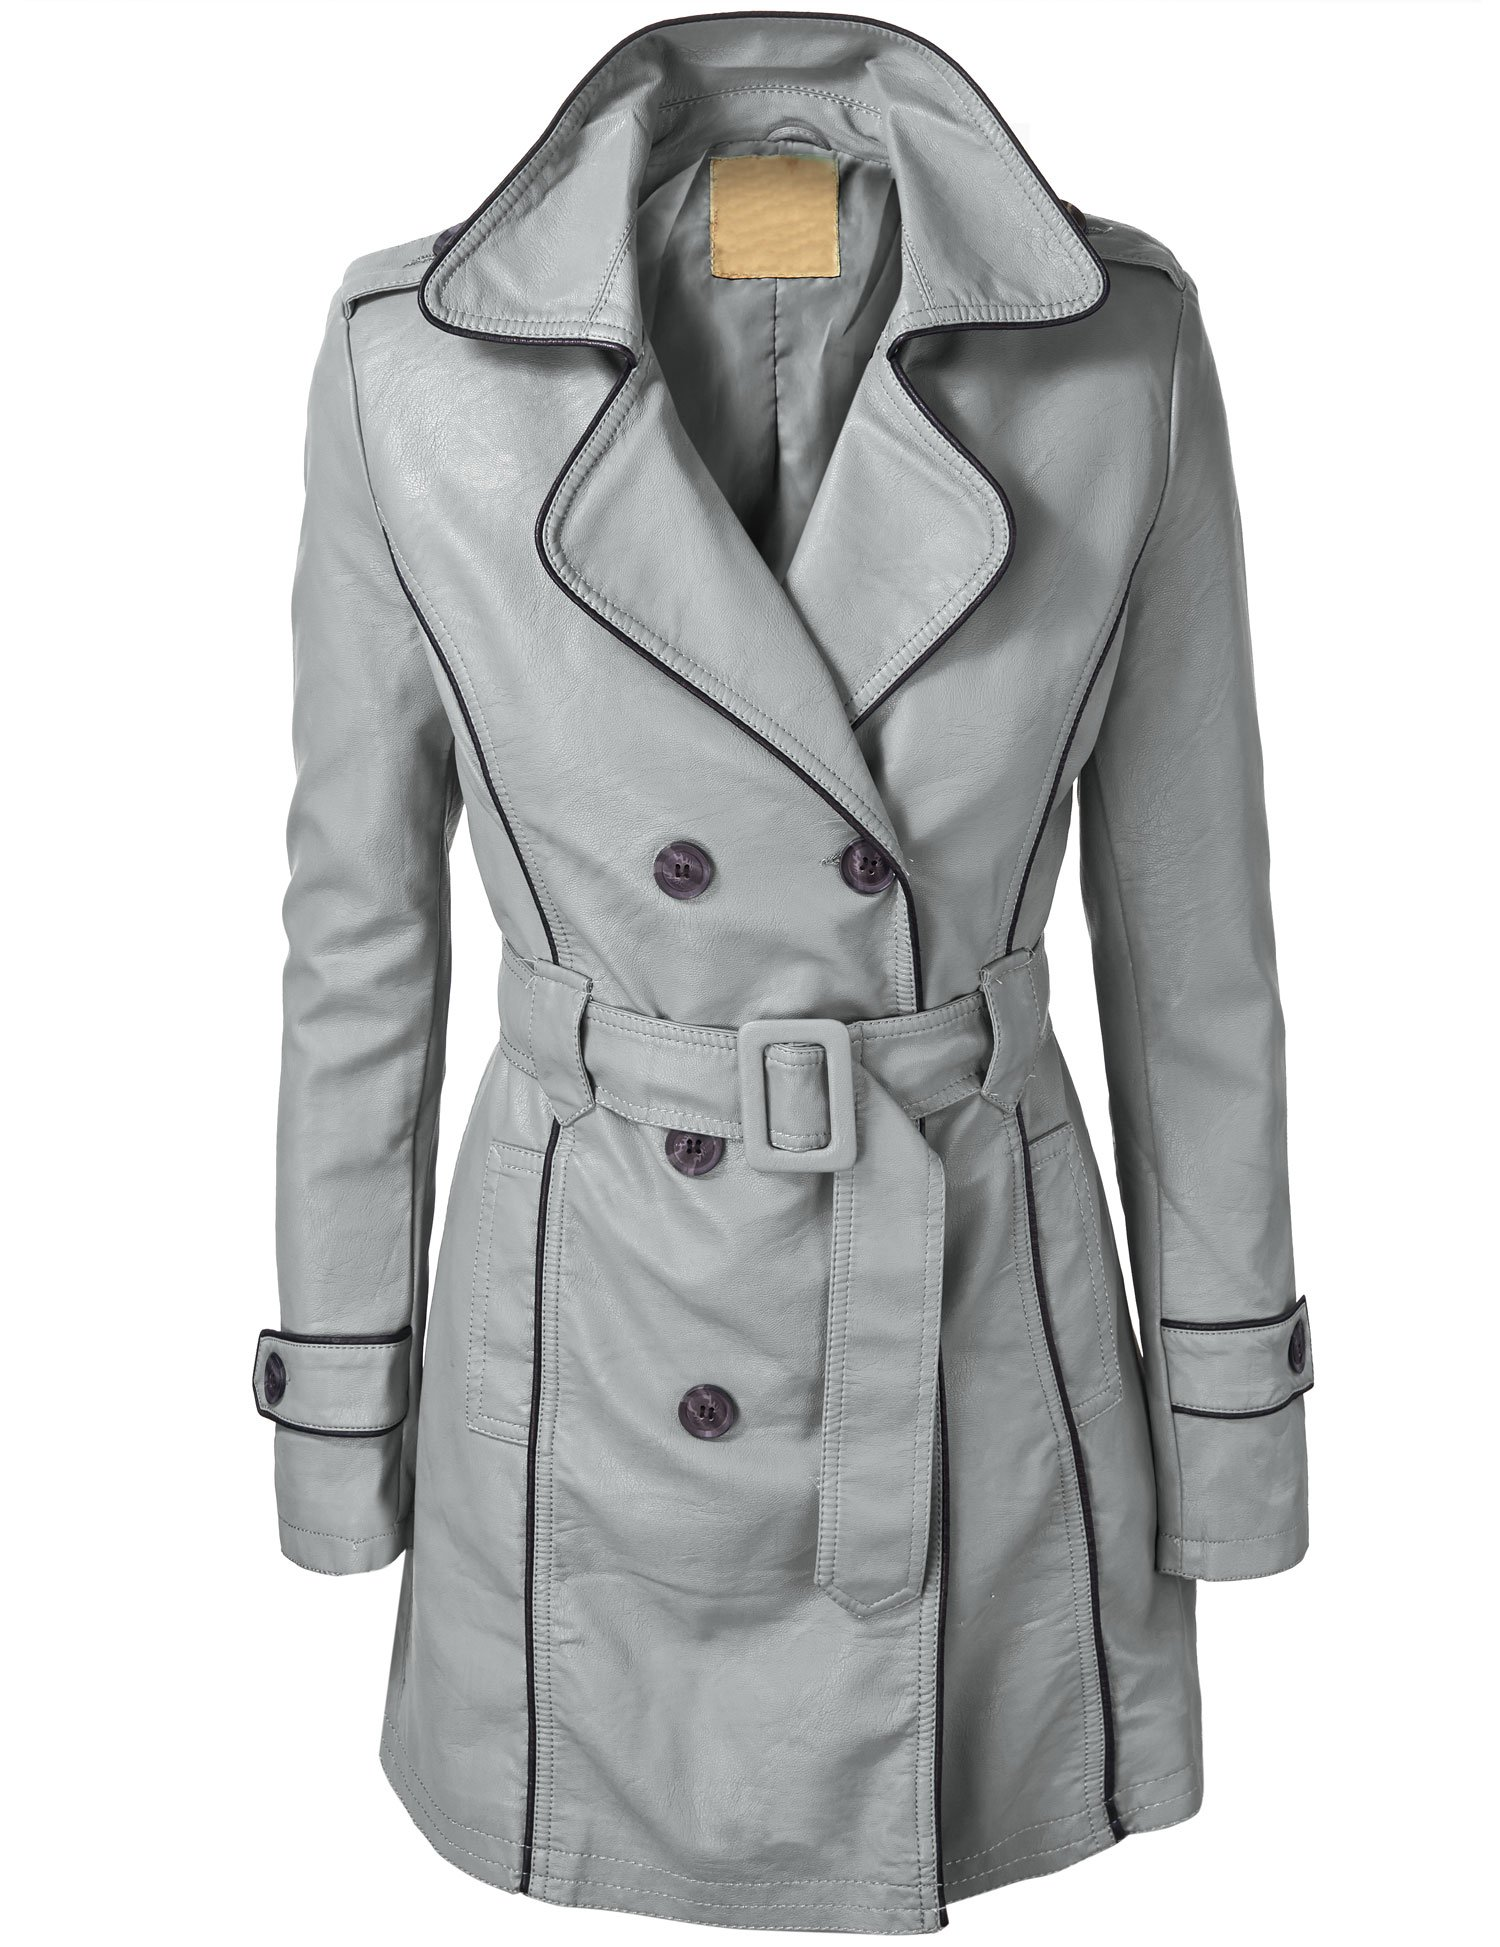 WJC739 Womens Jet Setter Faux Leather Trench Coat XS GRAY